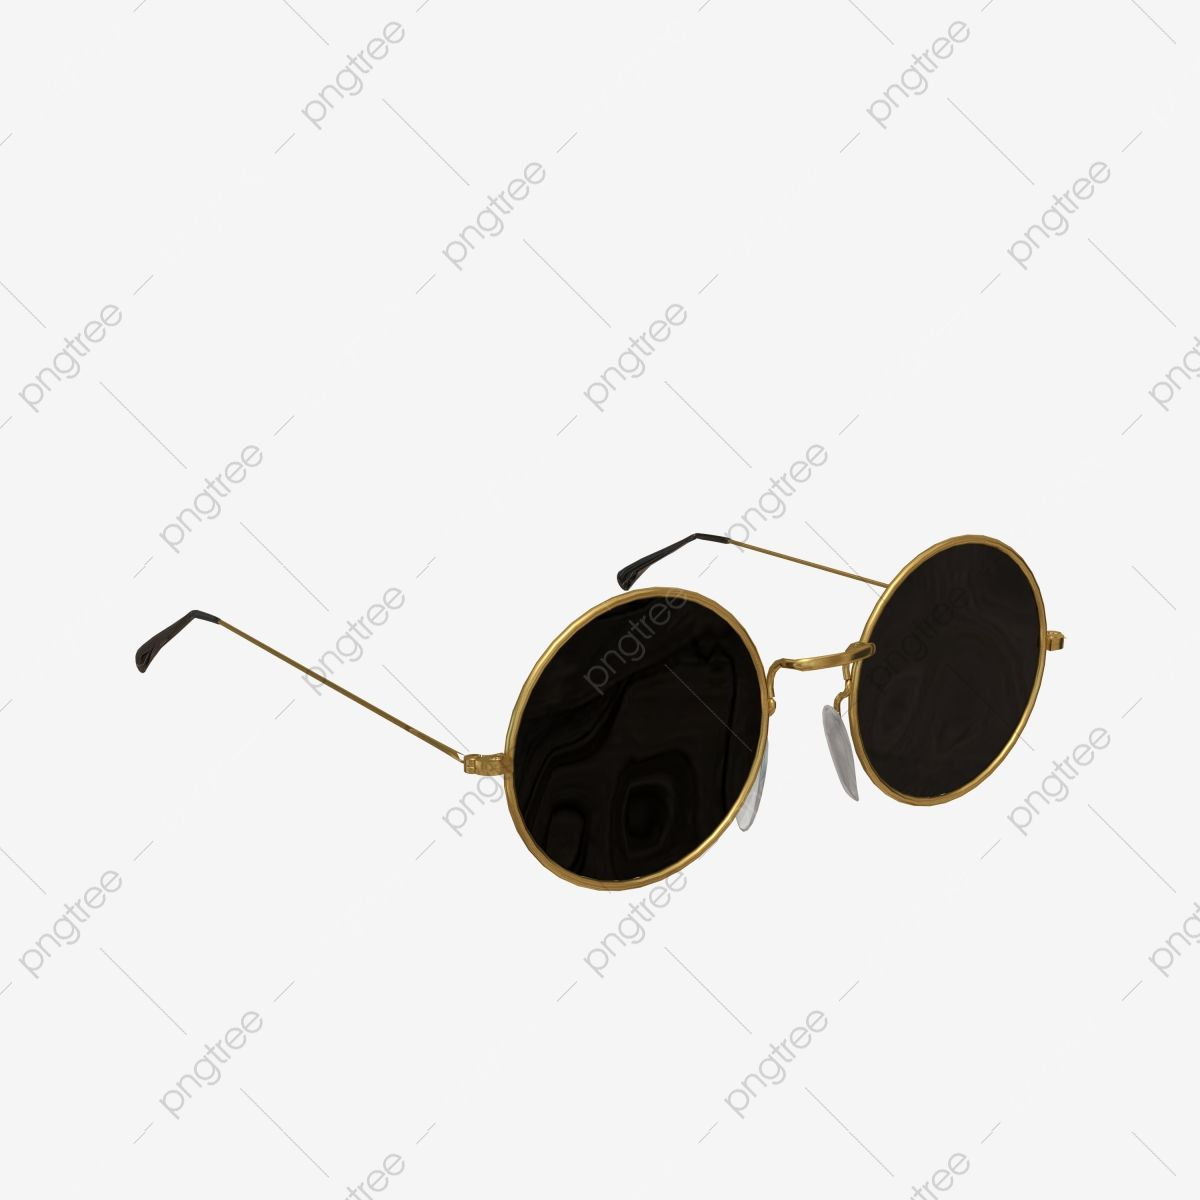 Editing Sunglass Unlimited Download Kisspng Com Iphone Background Images Studio Background Images Black Background Images